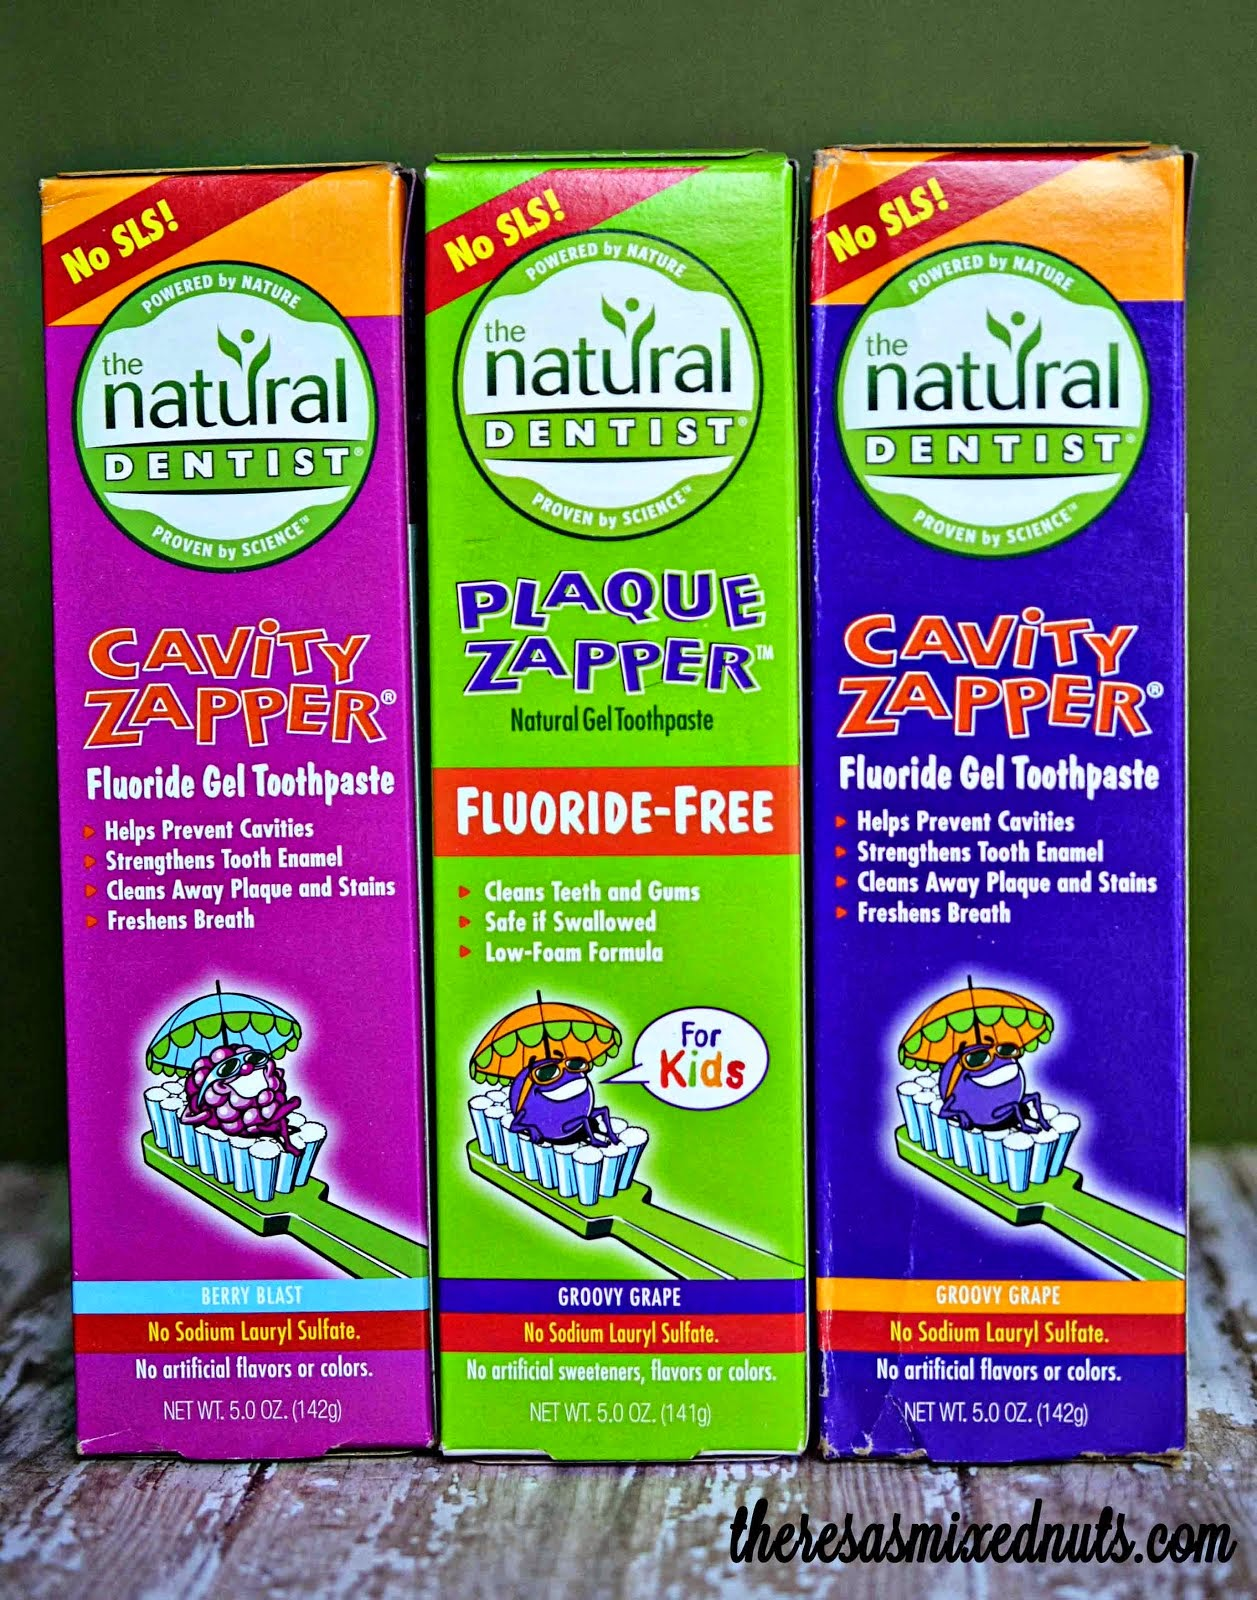 Enter To Win The Natural Dentist